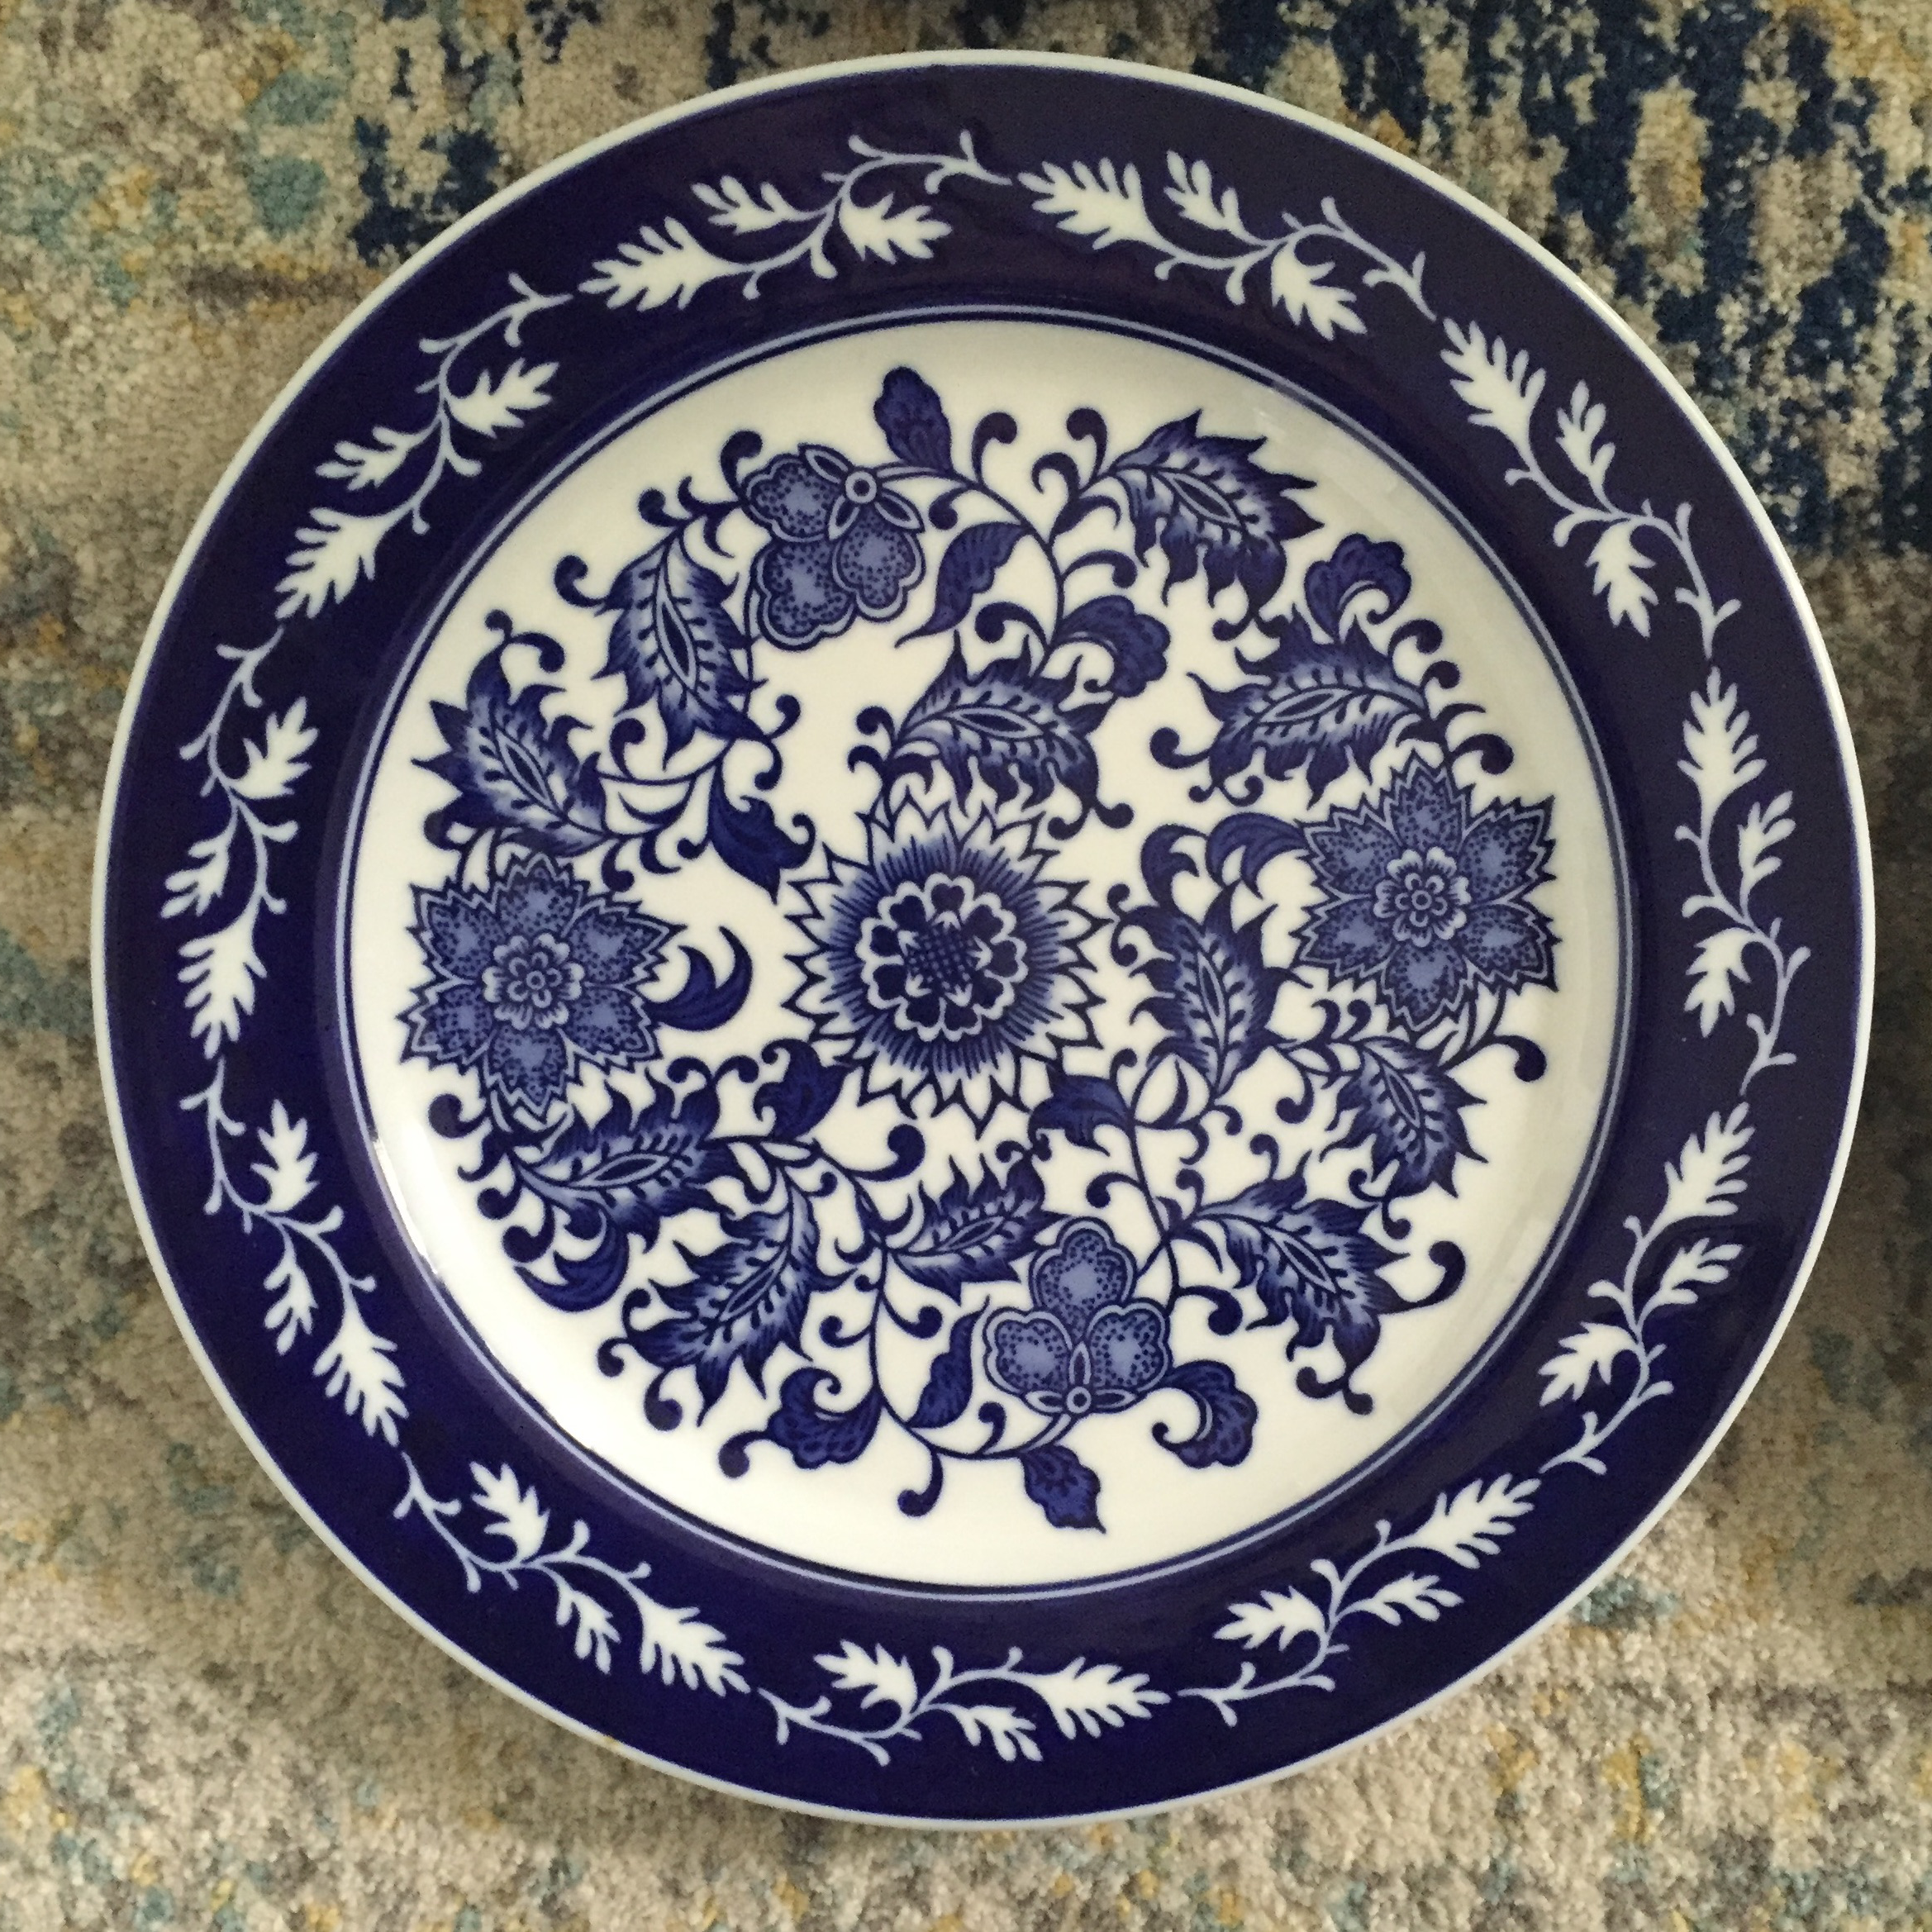 Chinoiserie Blue \u0026 White Bombay Asian Garden China Plates - Set of 4 - Image 6 & Chinoiserie Blue \u0026 White Bombay Asian Garden China Plates - Set of 4 ...